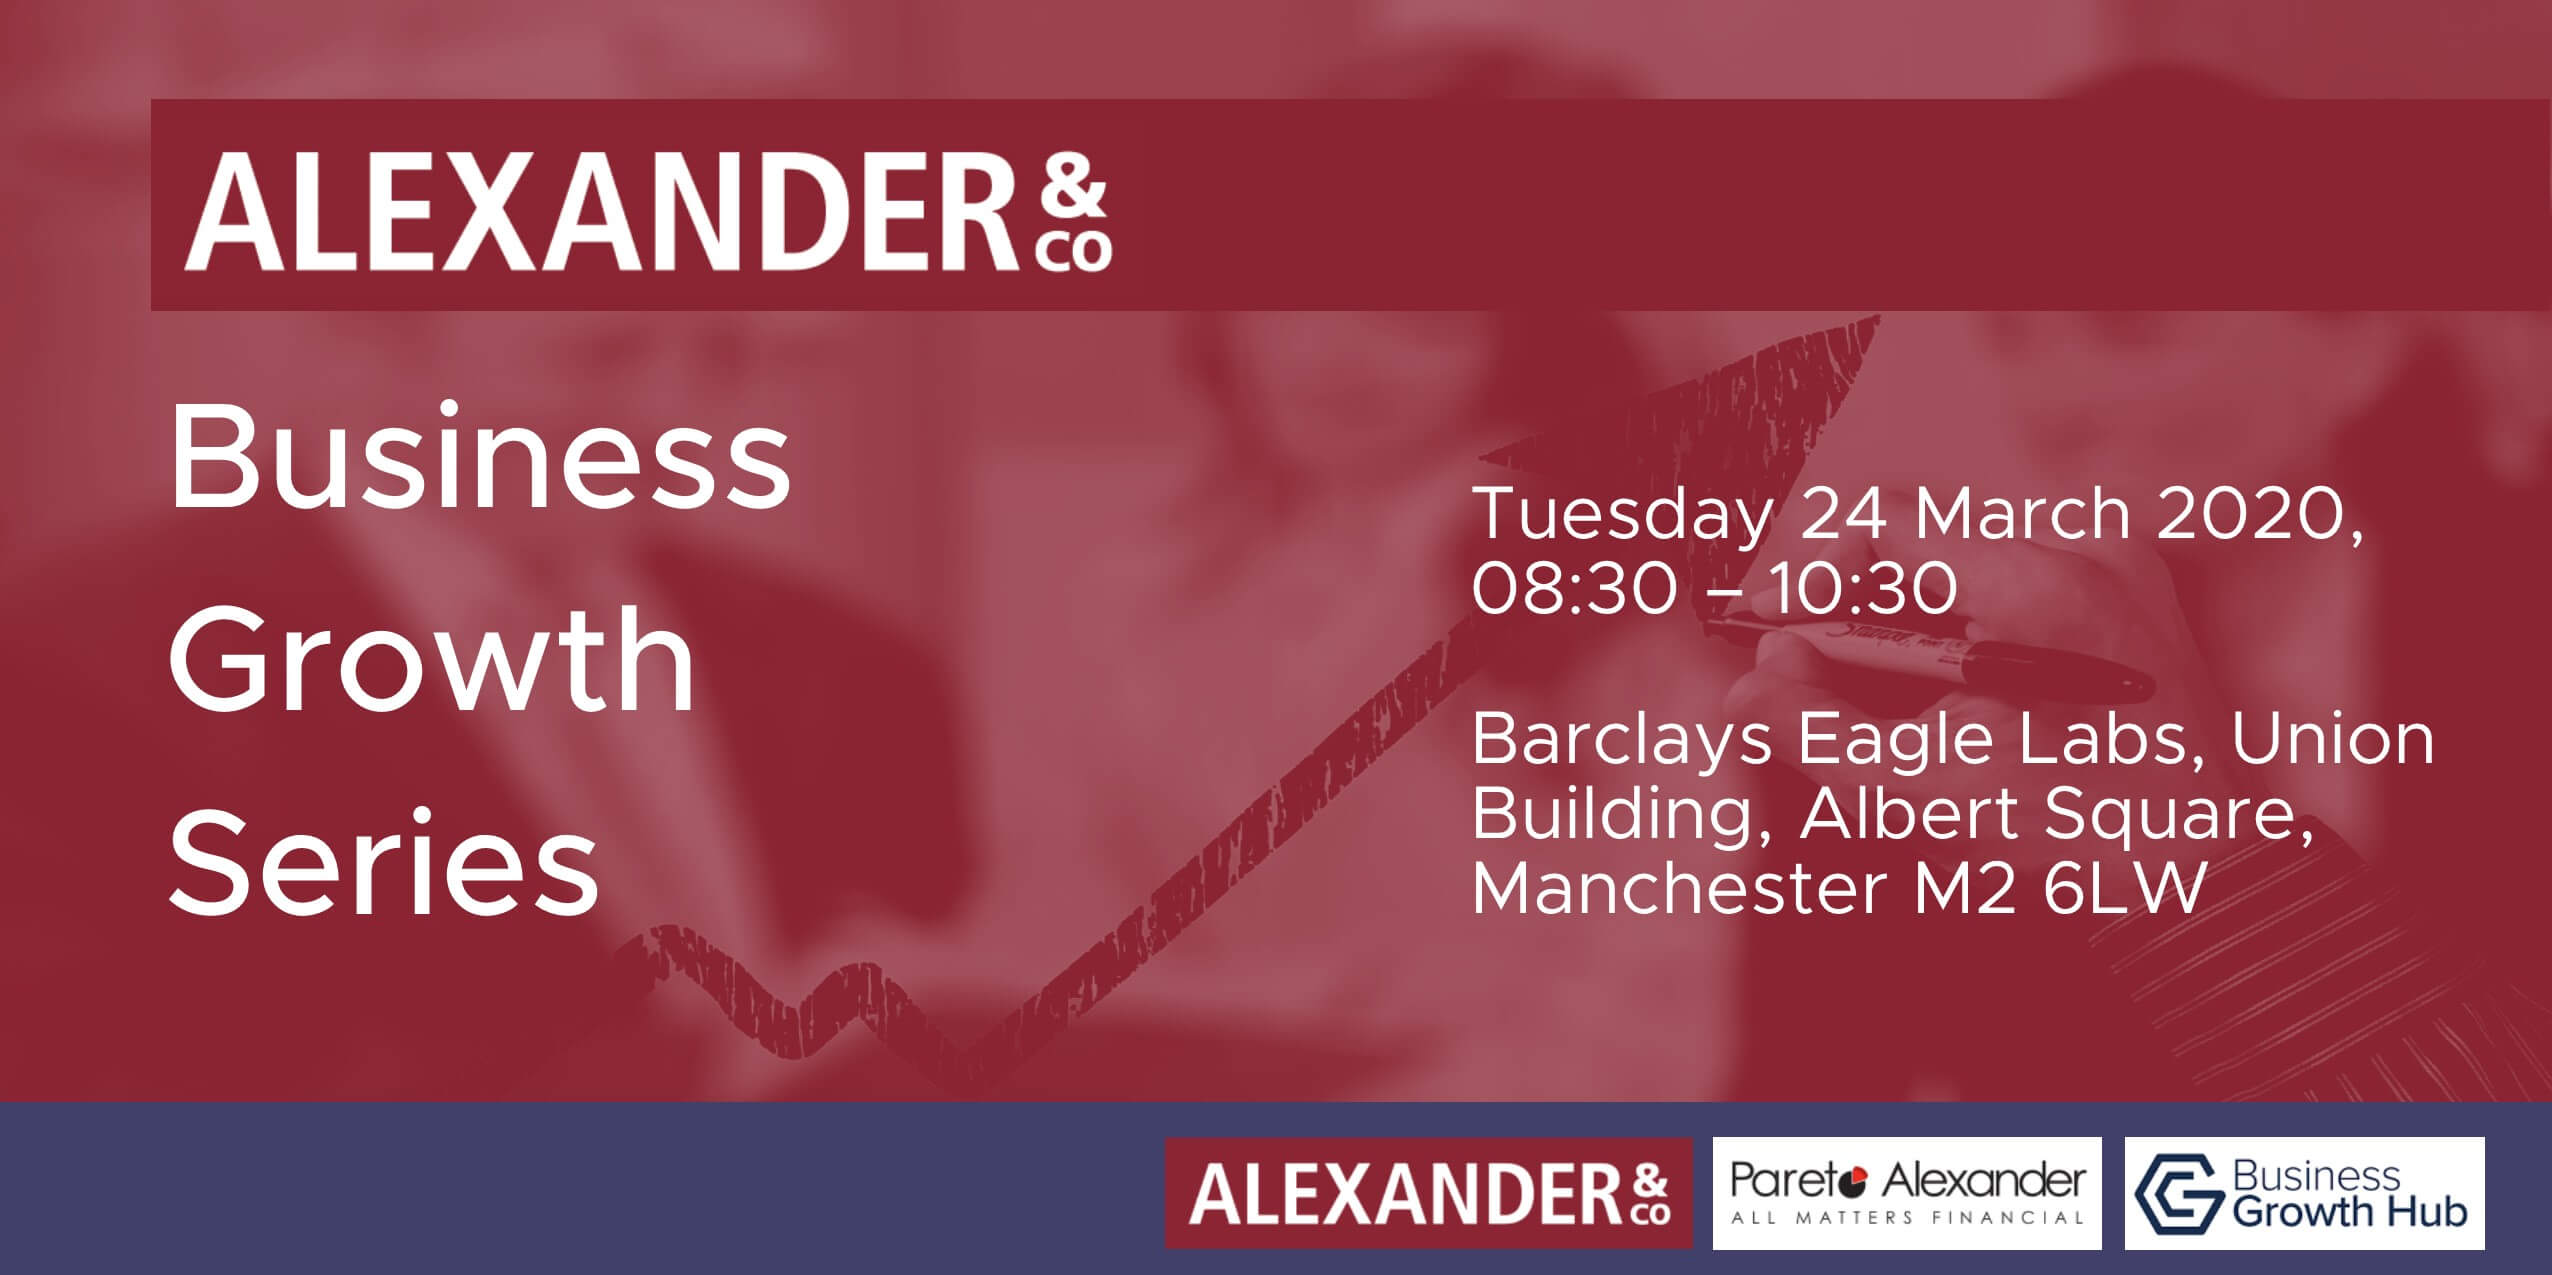 Alexander & Co Business Growth Series